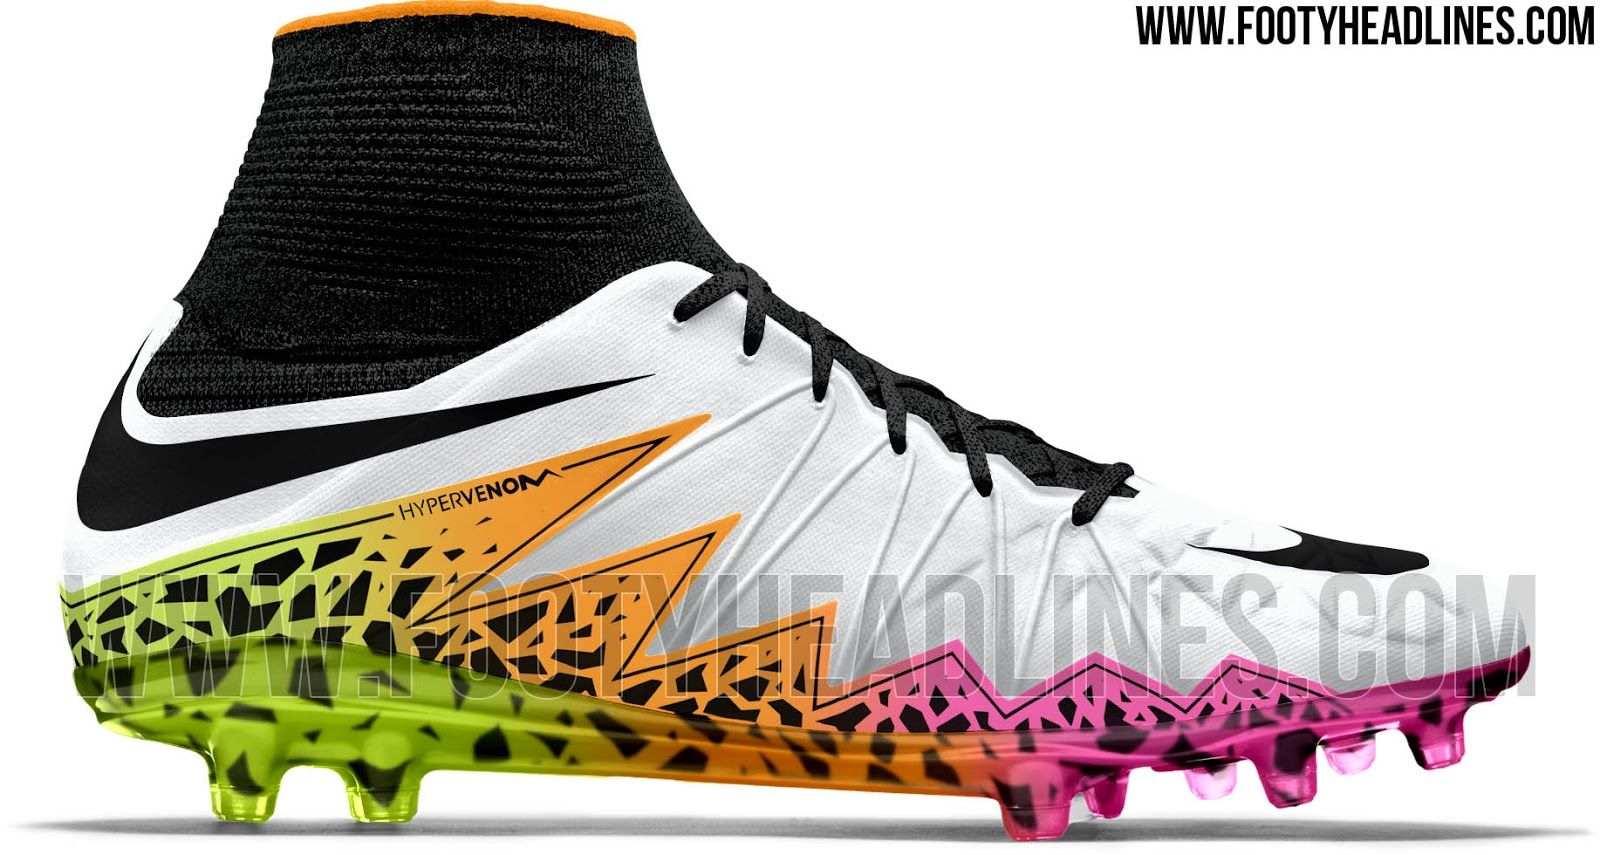 The Nike Hypervenom Phantom 2016 Multicolor Cleats introduce a spectacular  design. Set to be released